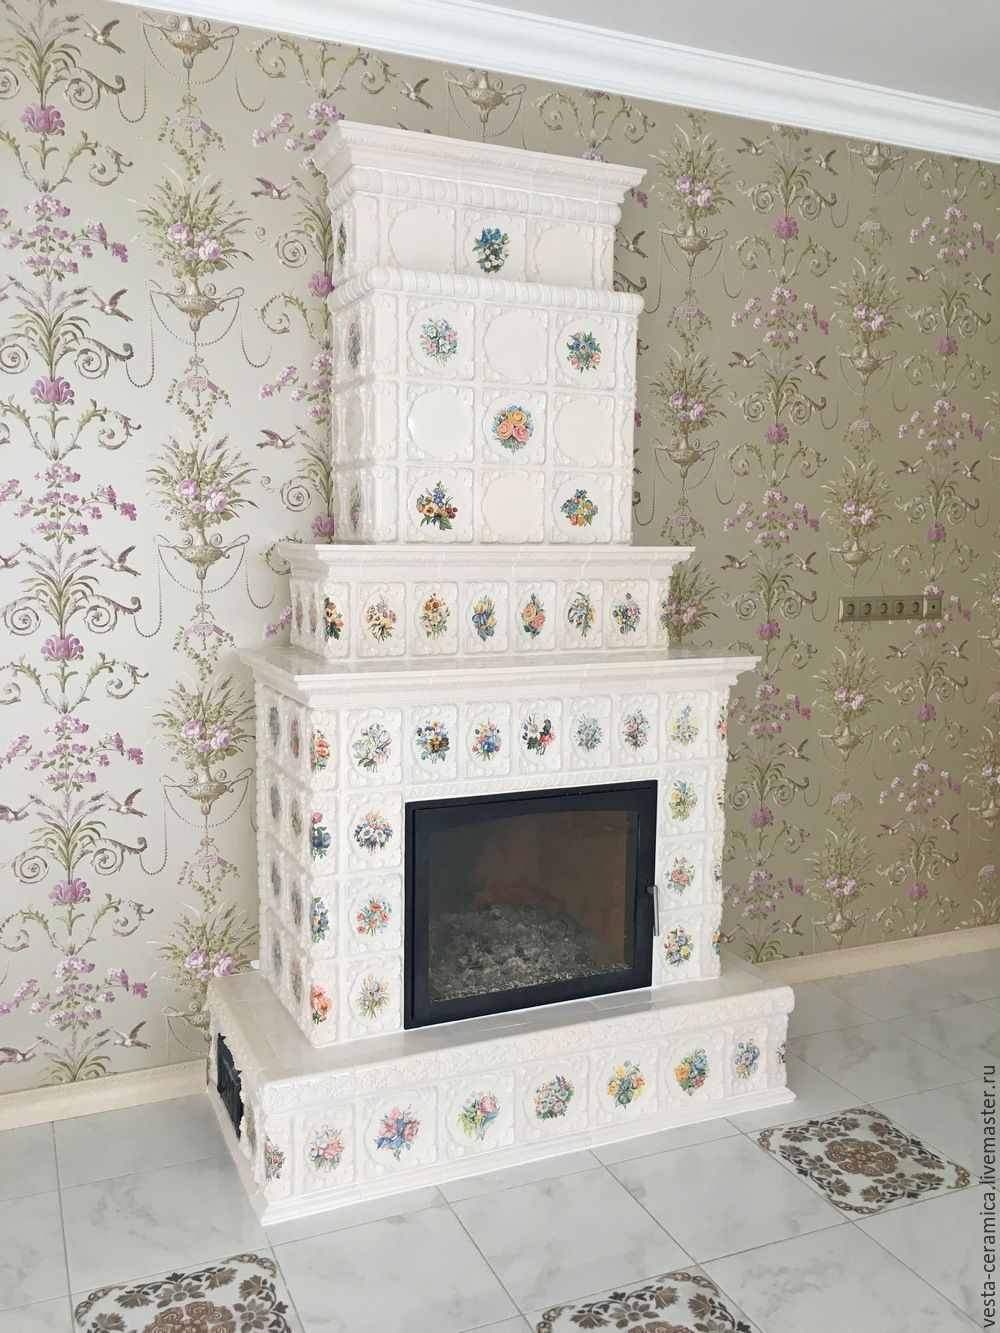 Tiled fireplace 'blyumen', Fireplaces, Moscow,  Фото №1